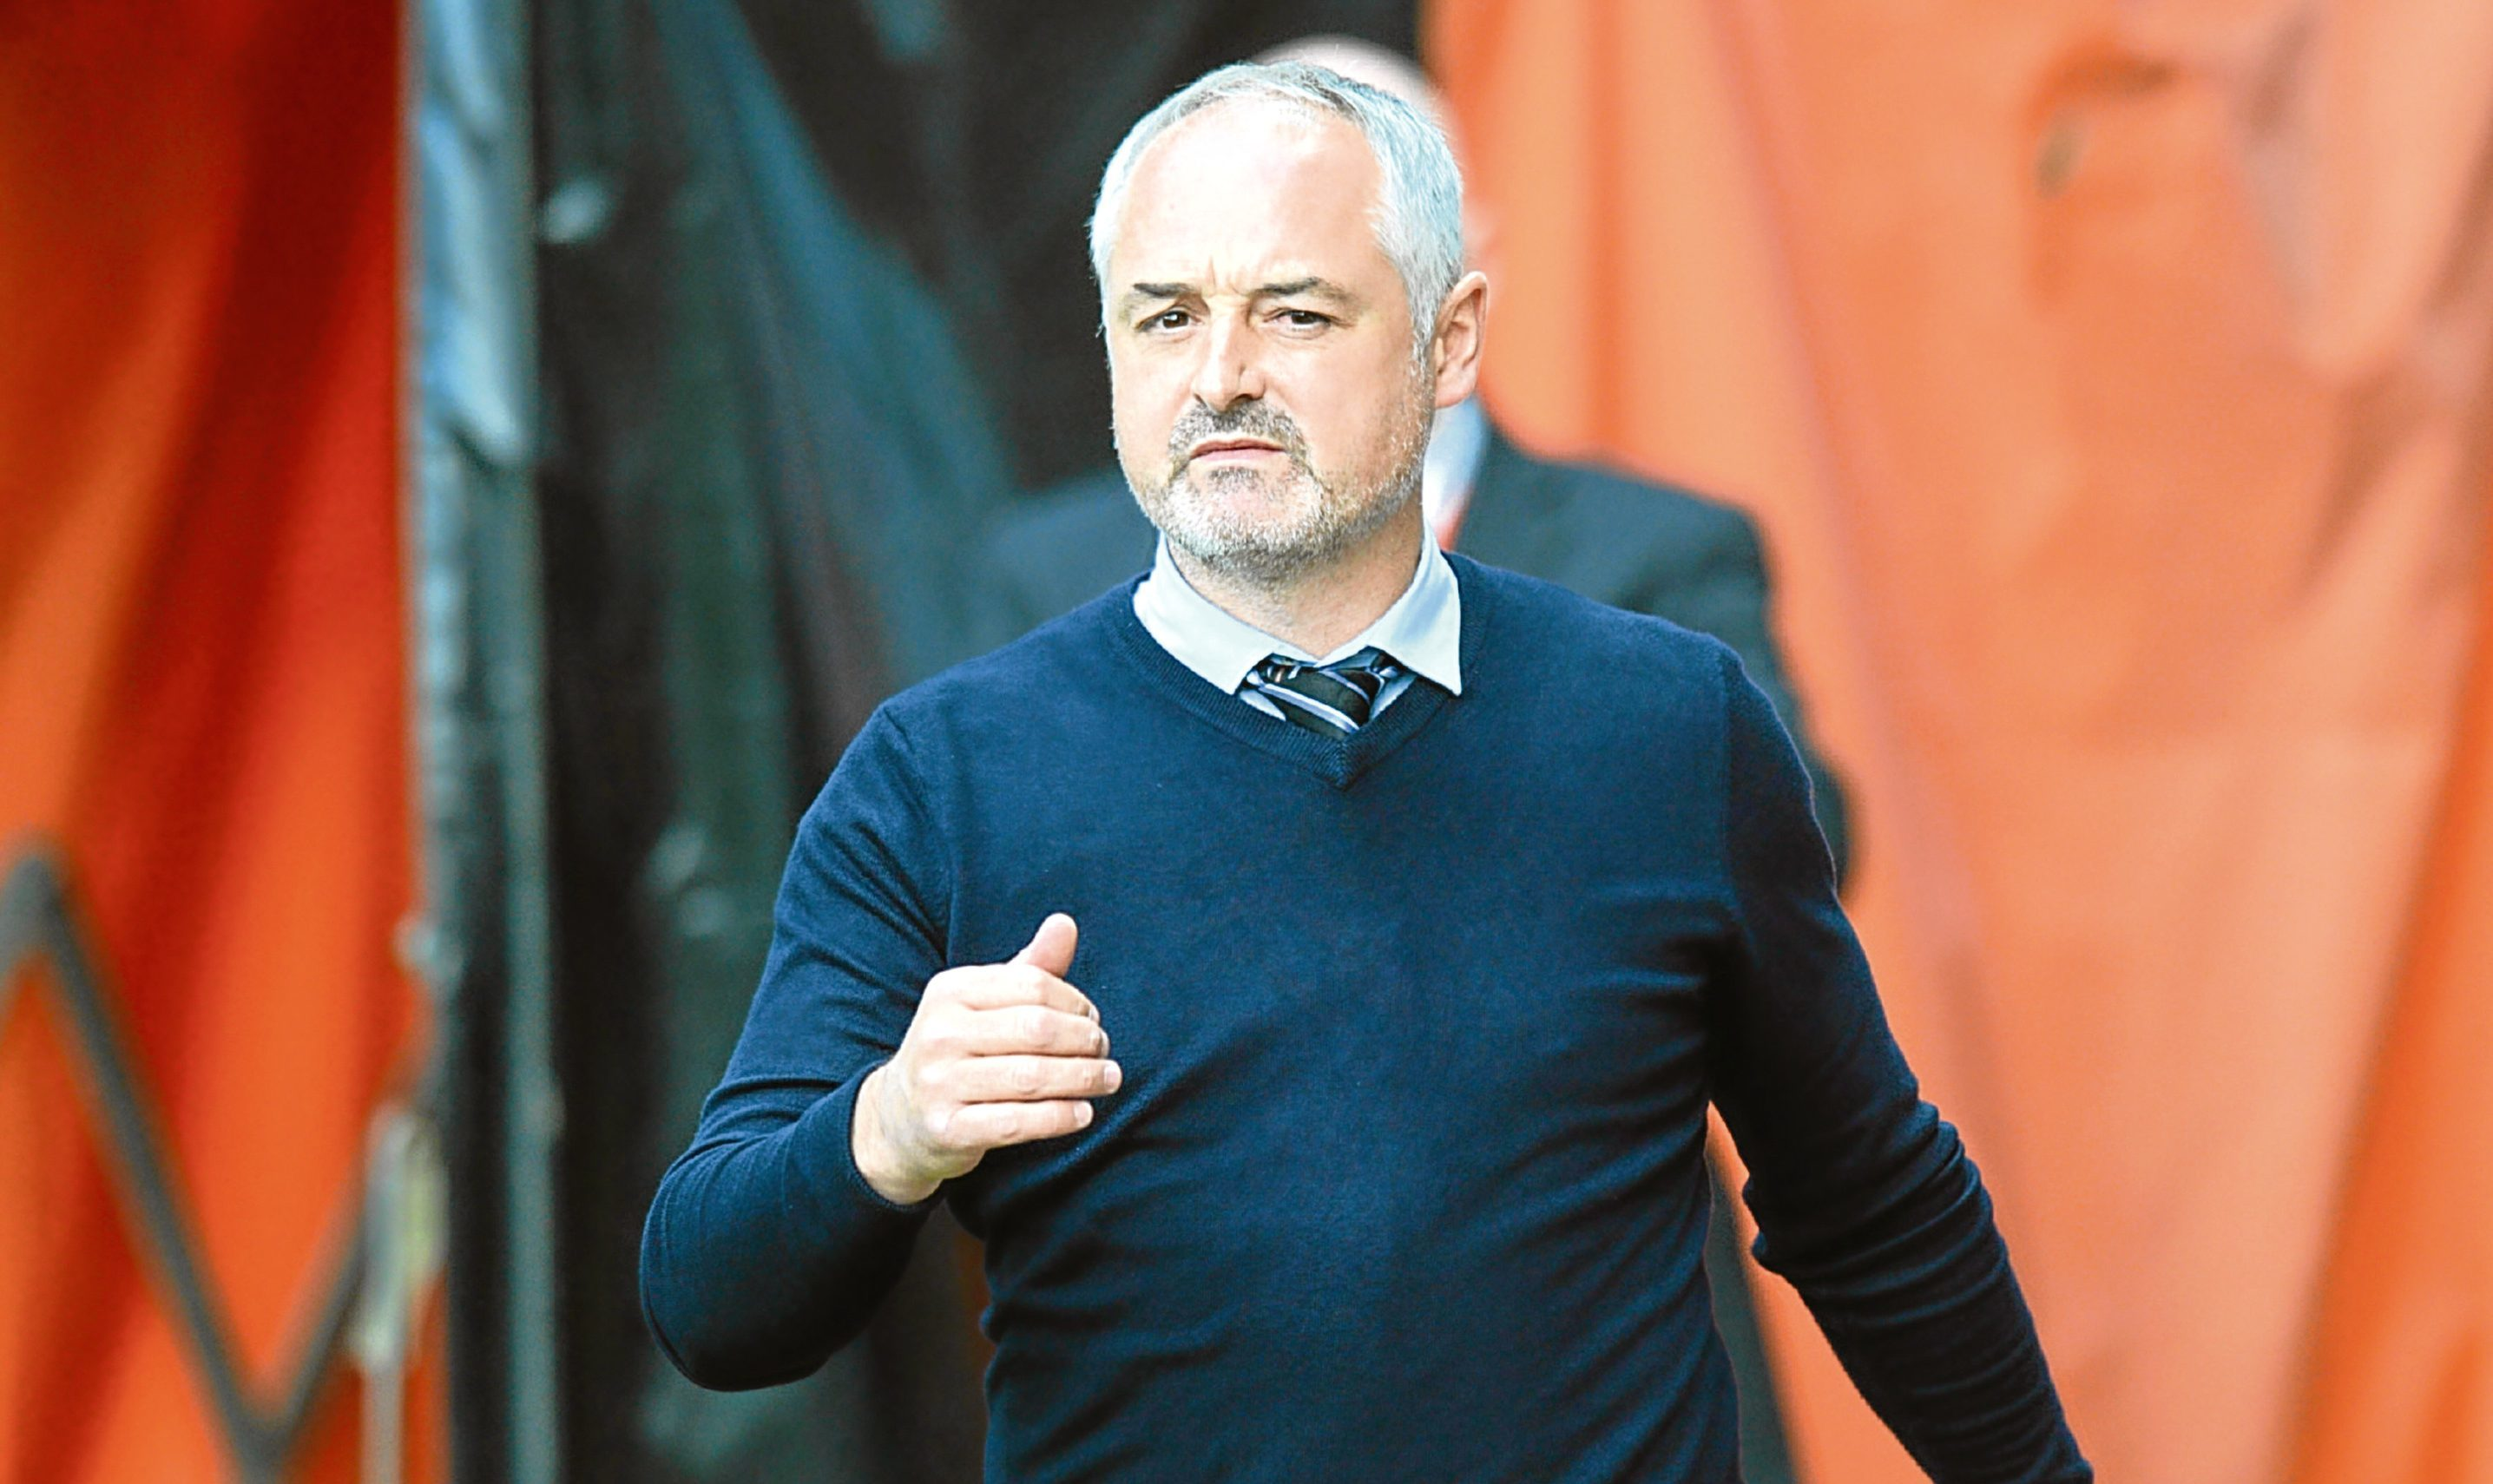 Dundee United manager Ray McKinnon is confident his side can get back into the Premiership